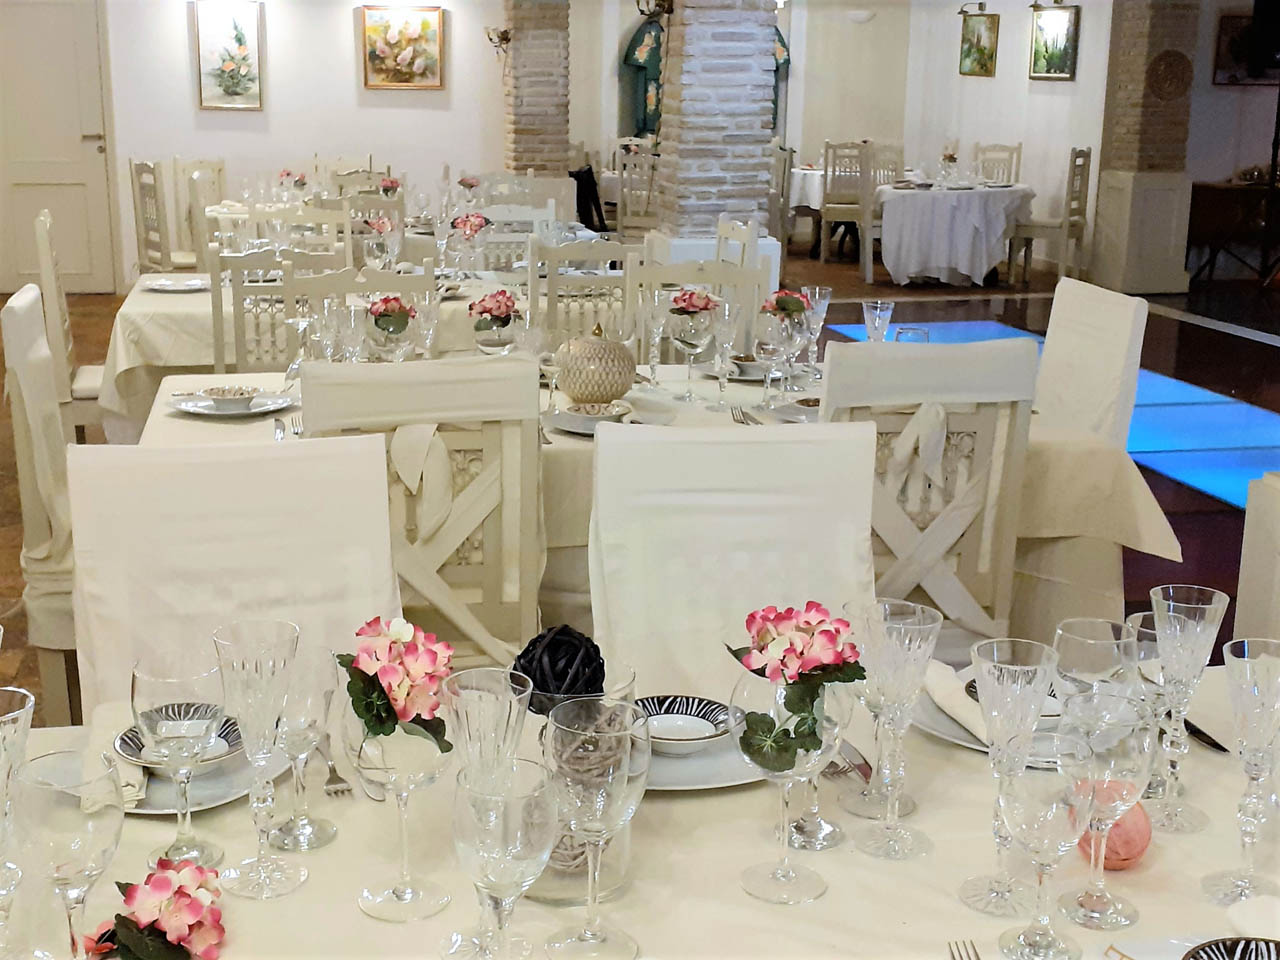 Reception hall wedding baptism athens glyfada area barin events